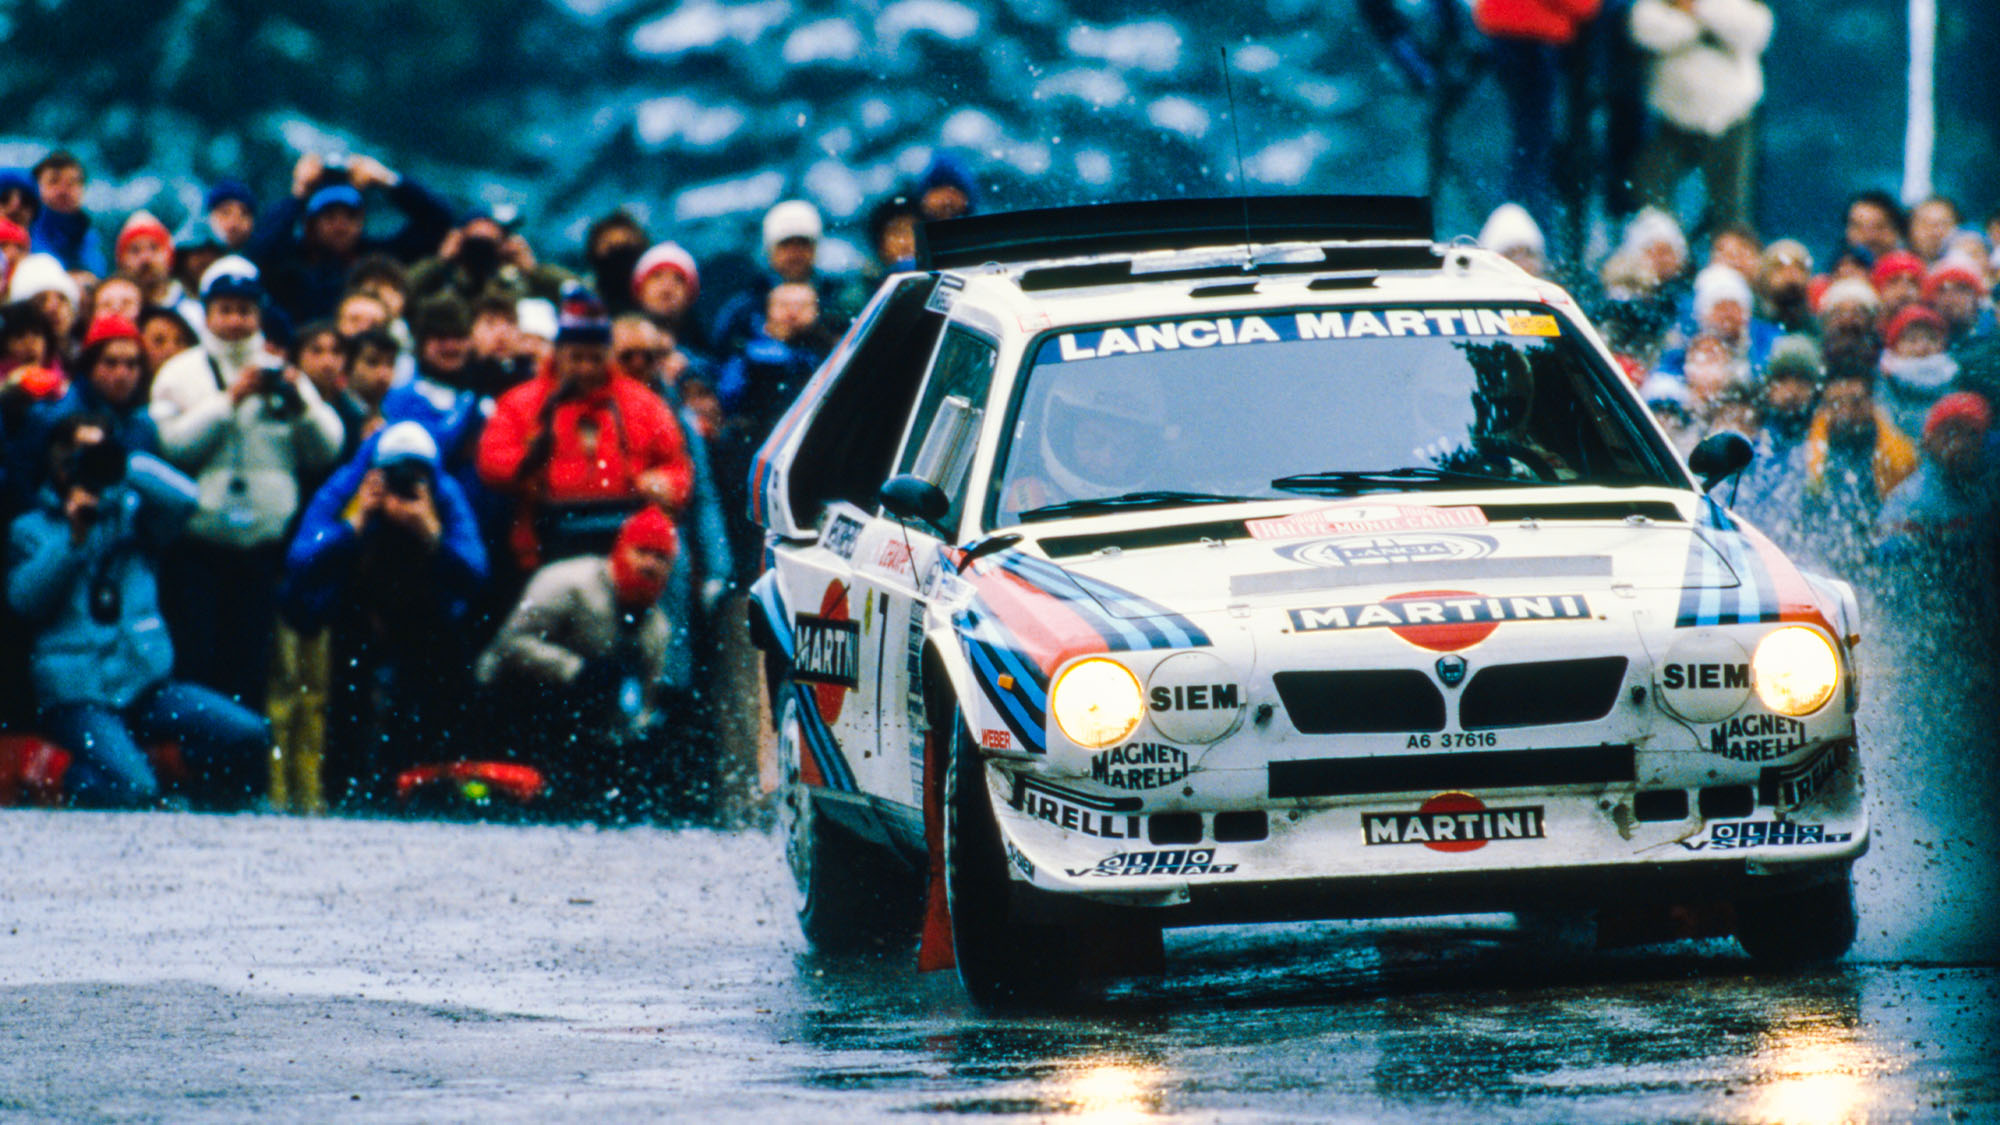 1986 Monte Carlo Rally: How Henri Toivonen won with a Lancia 'shaped like a banana'